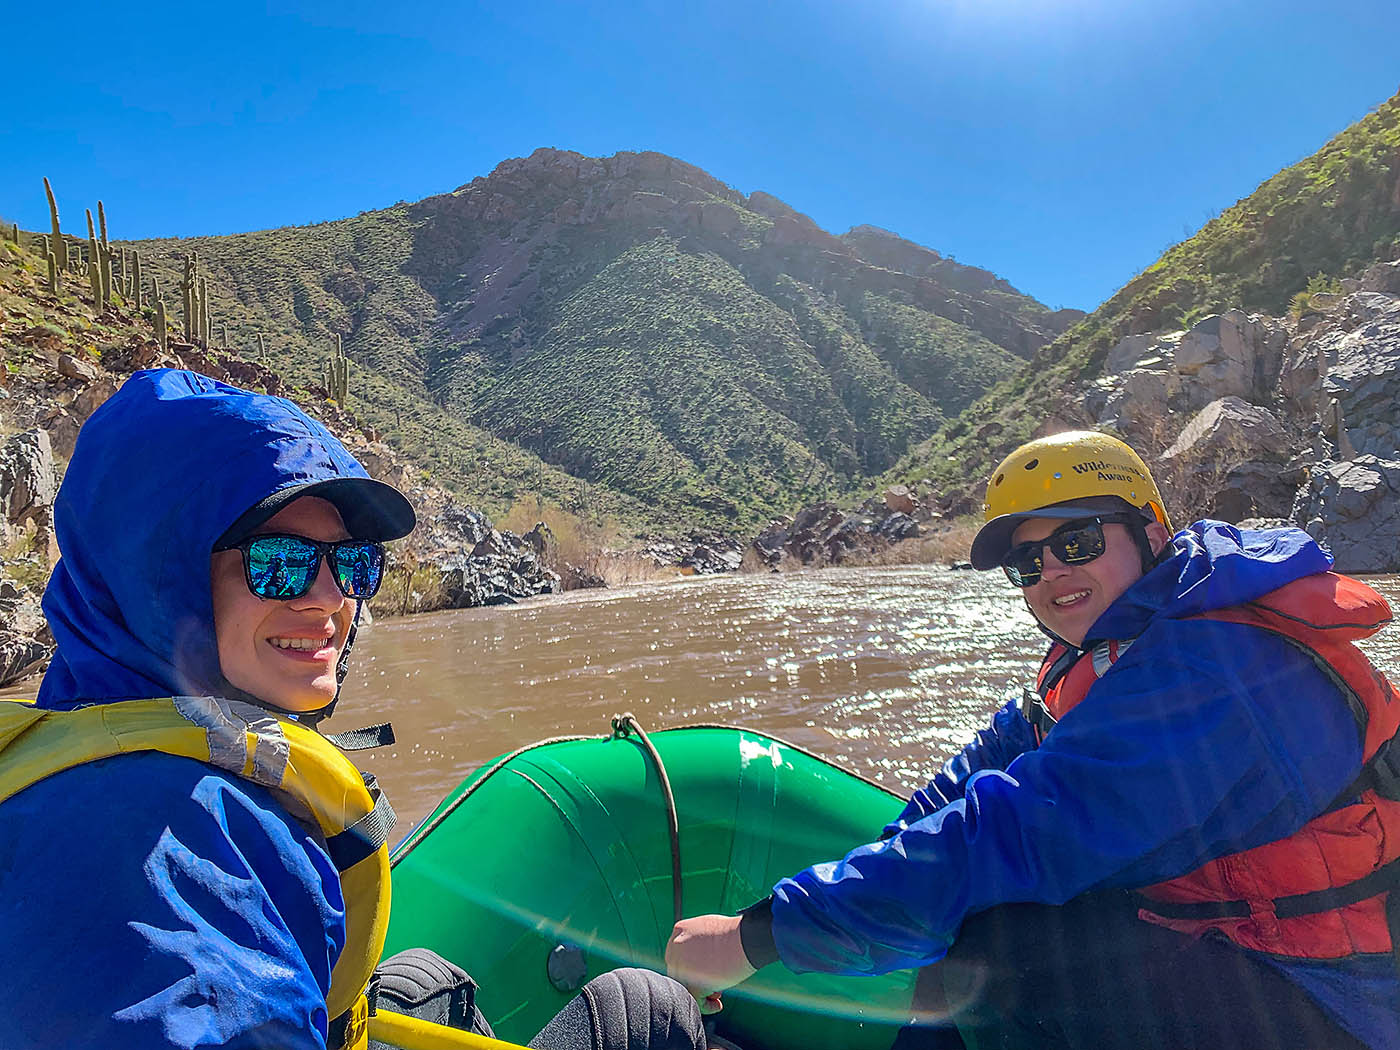 10 Reasons to go on a Whitewater Rafting Trip with Your Teens